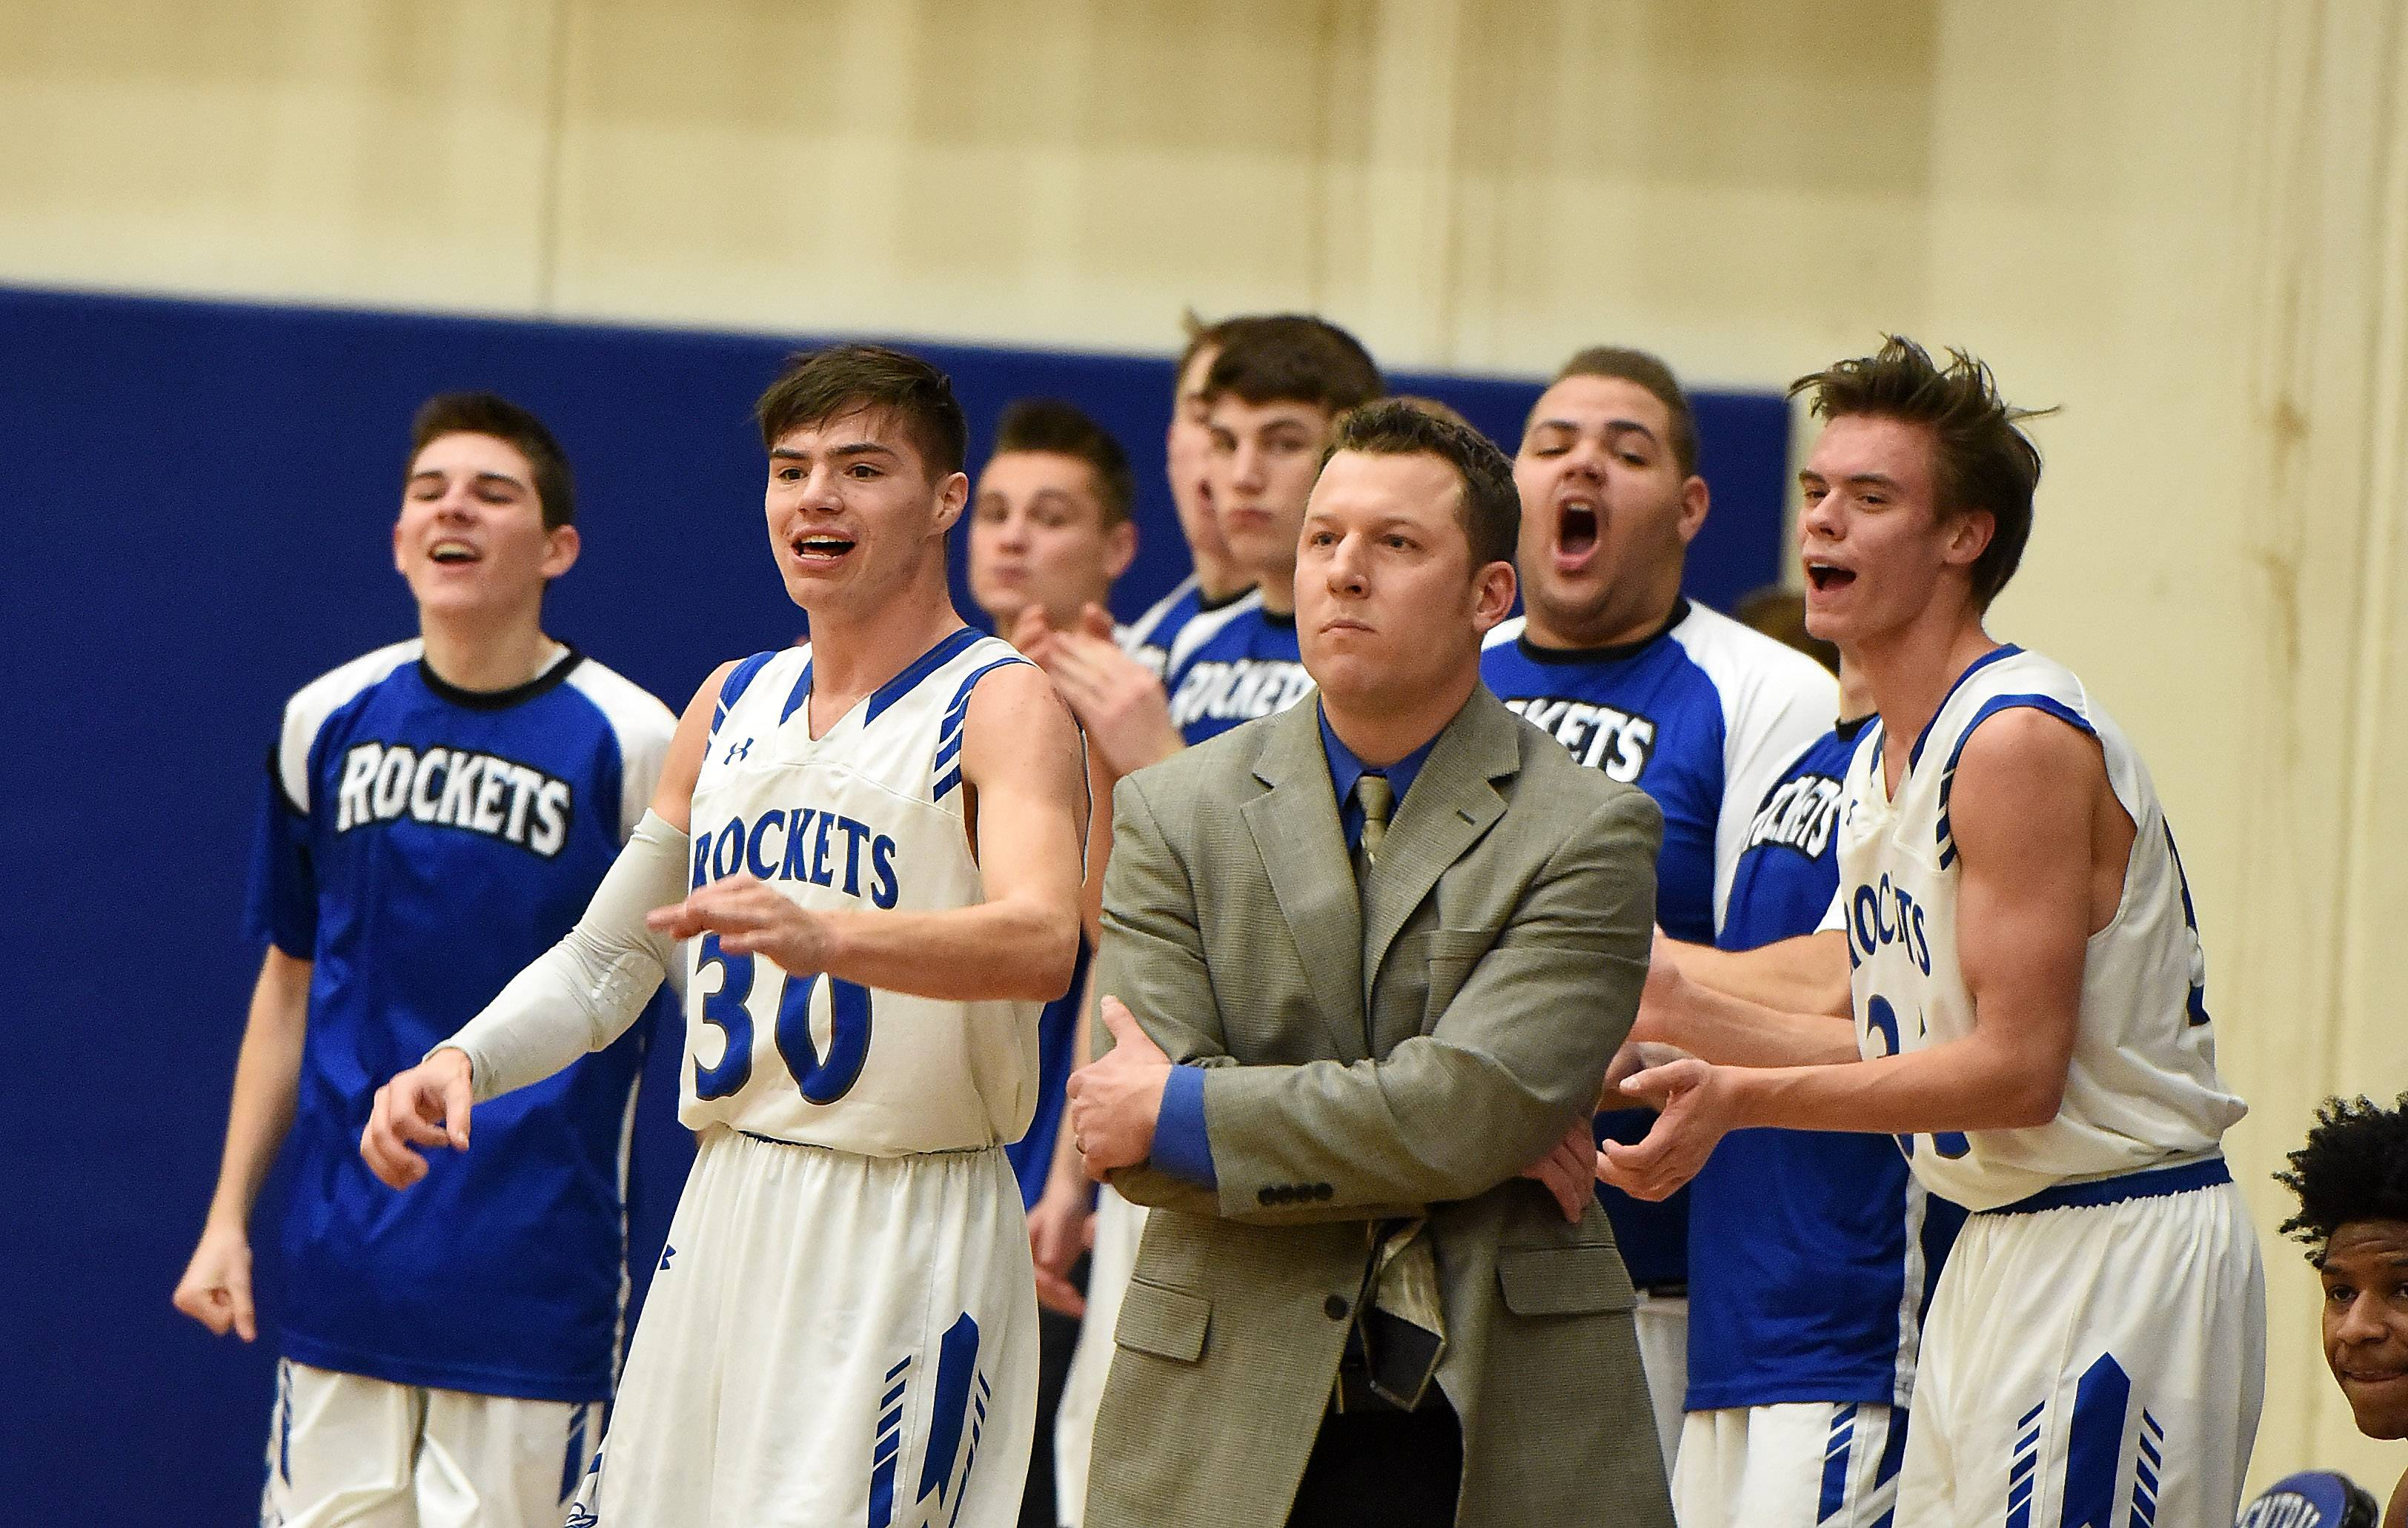 Burlington Central, under the guidance of head coach Brett Porto, won a program-record 28 games this season and advanced to the Sweet 16 for the first time in school history.